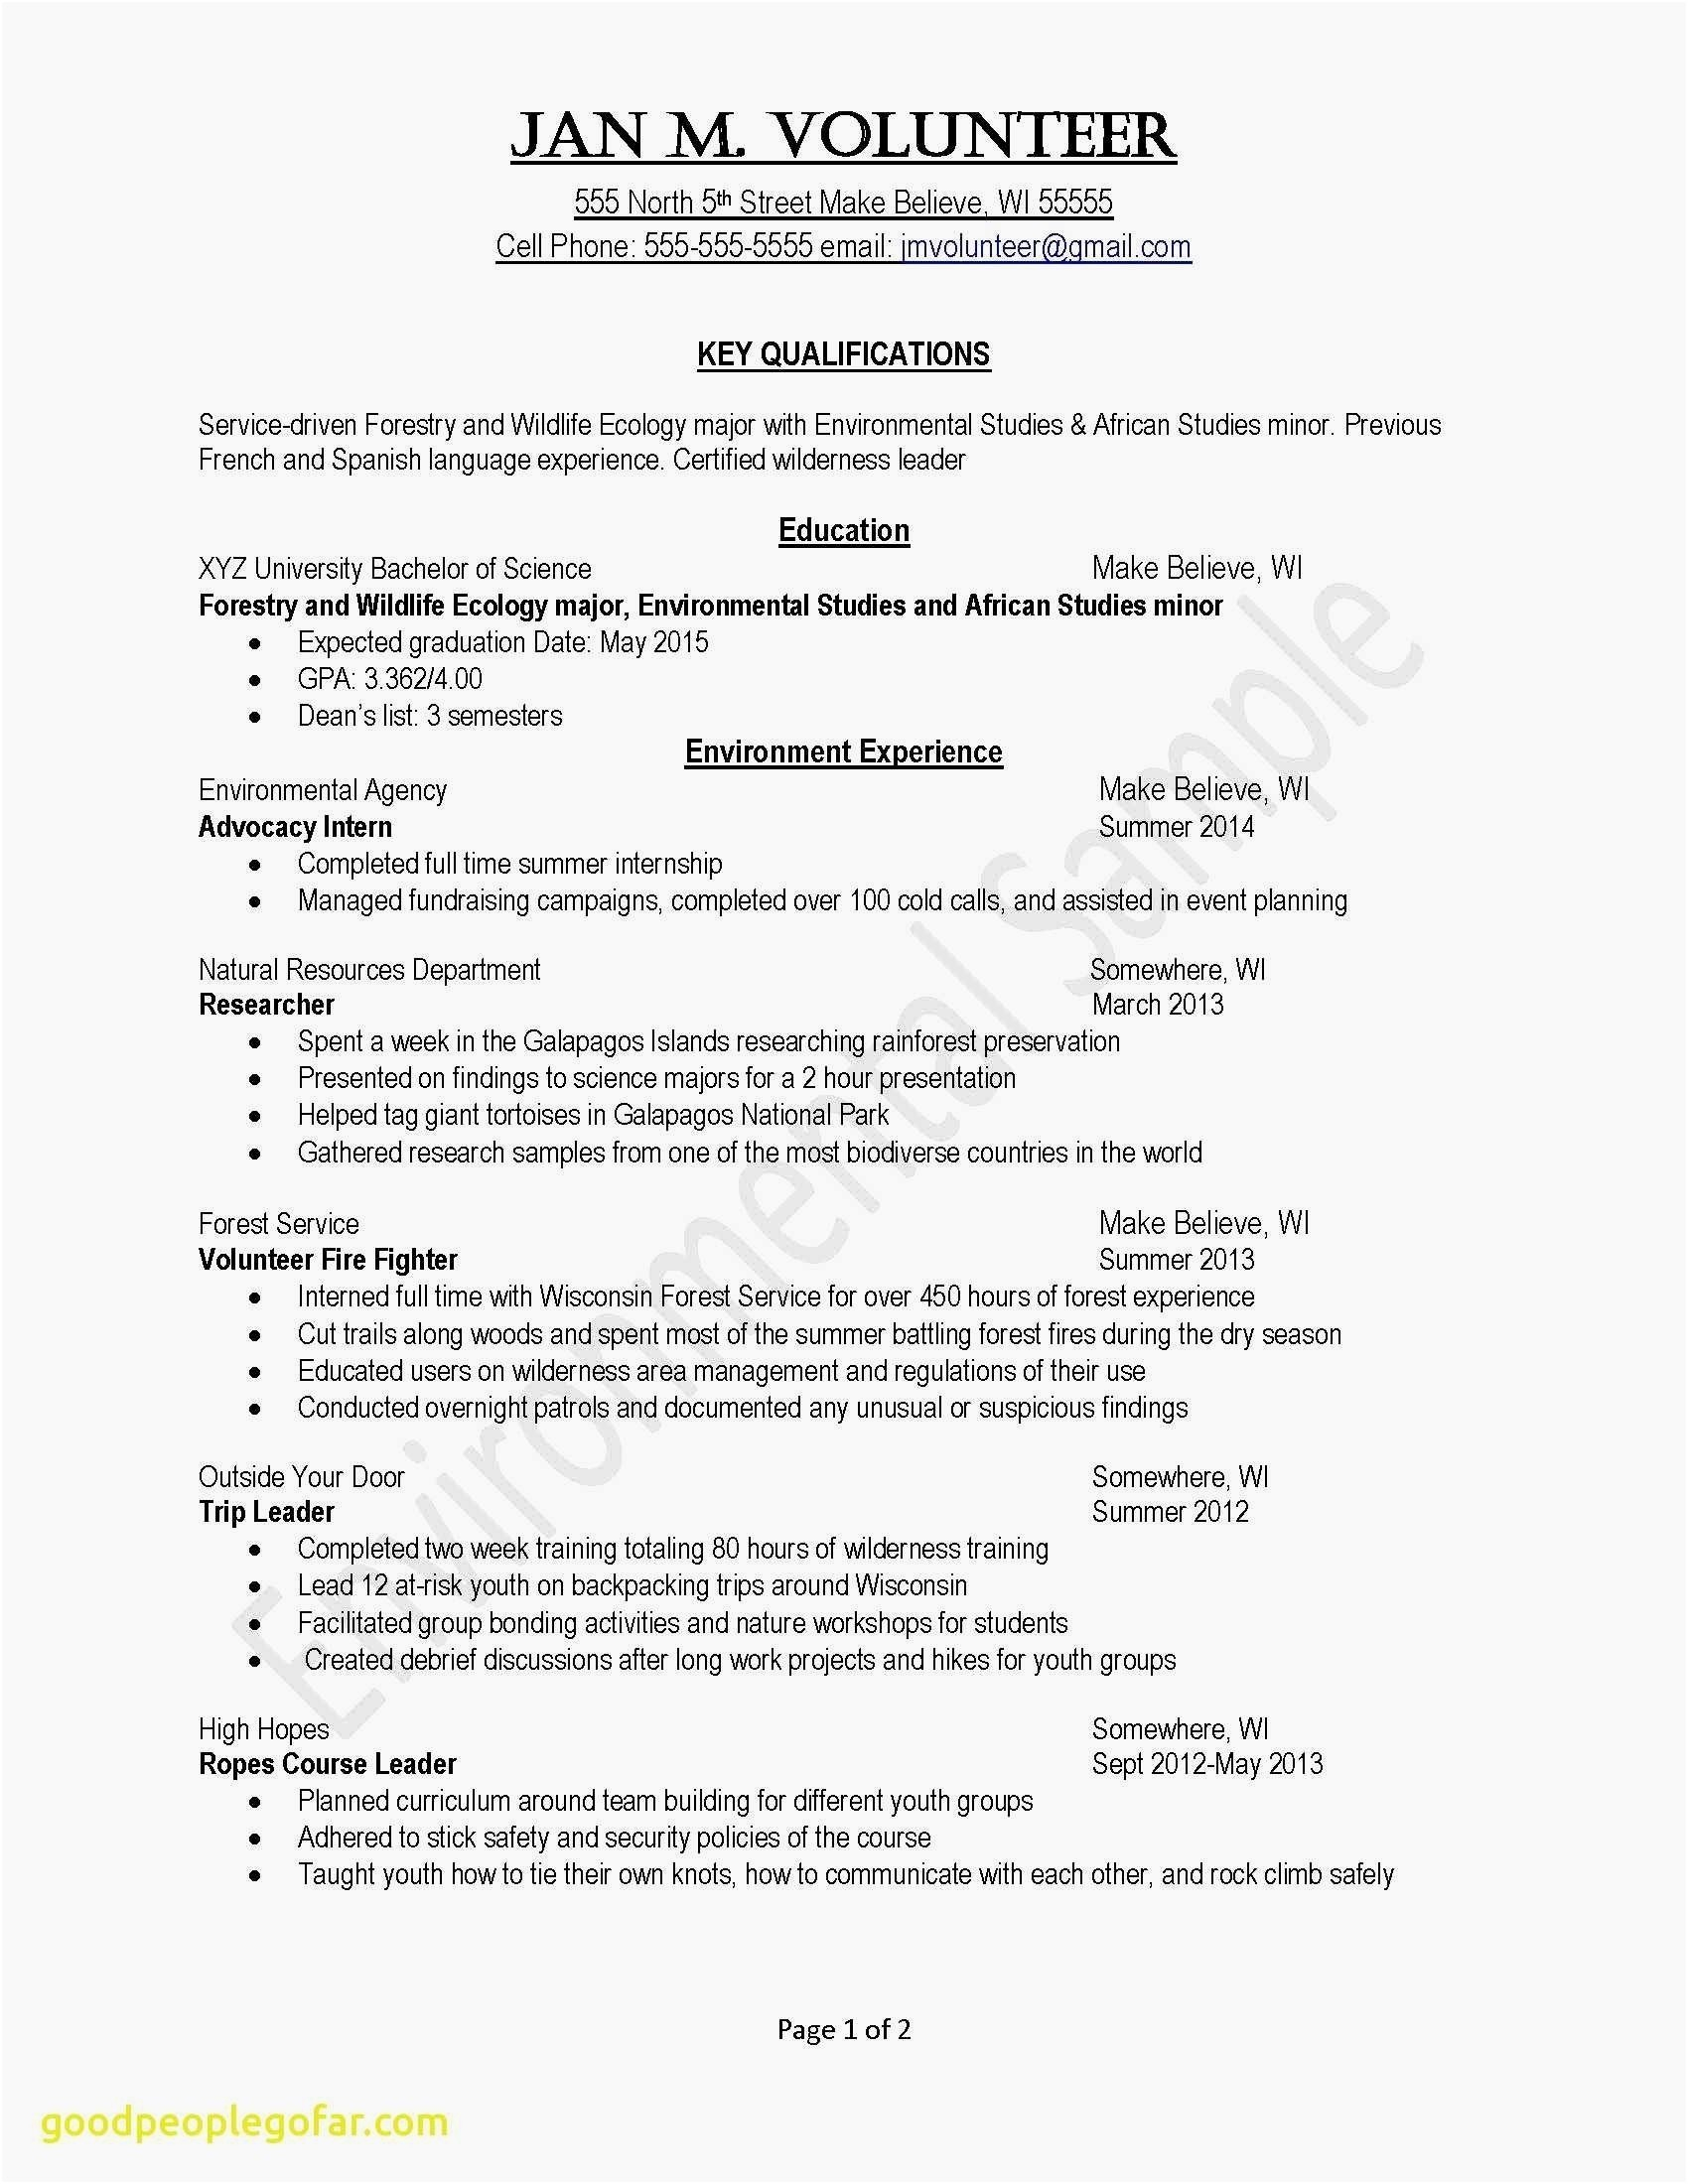 Angular 2 Resume - Angularjs Resume Valid Angularjs Developer Resume Fresh asp Net Mvc